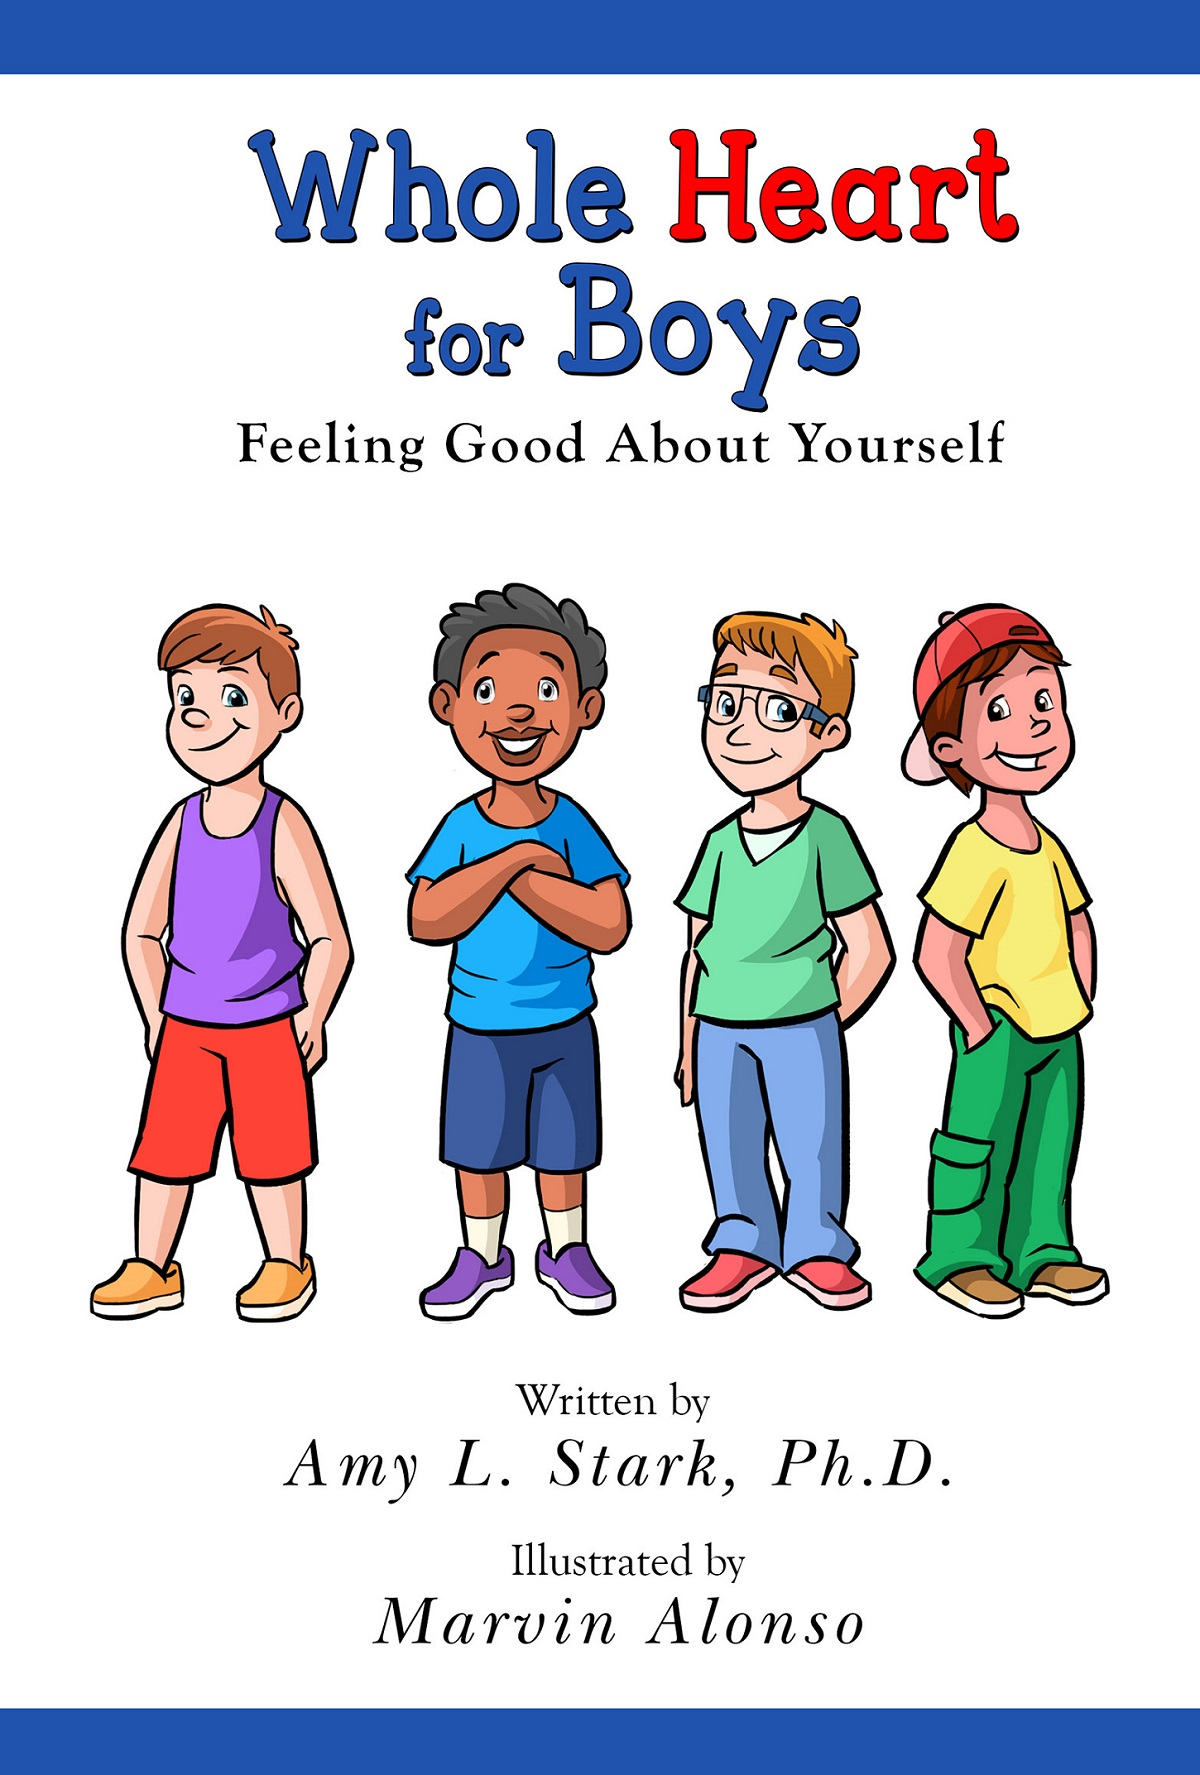 Dr. Amy Stark's new book helps boys deal with physical bullying and self-esteem